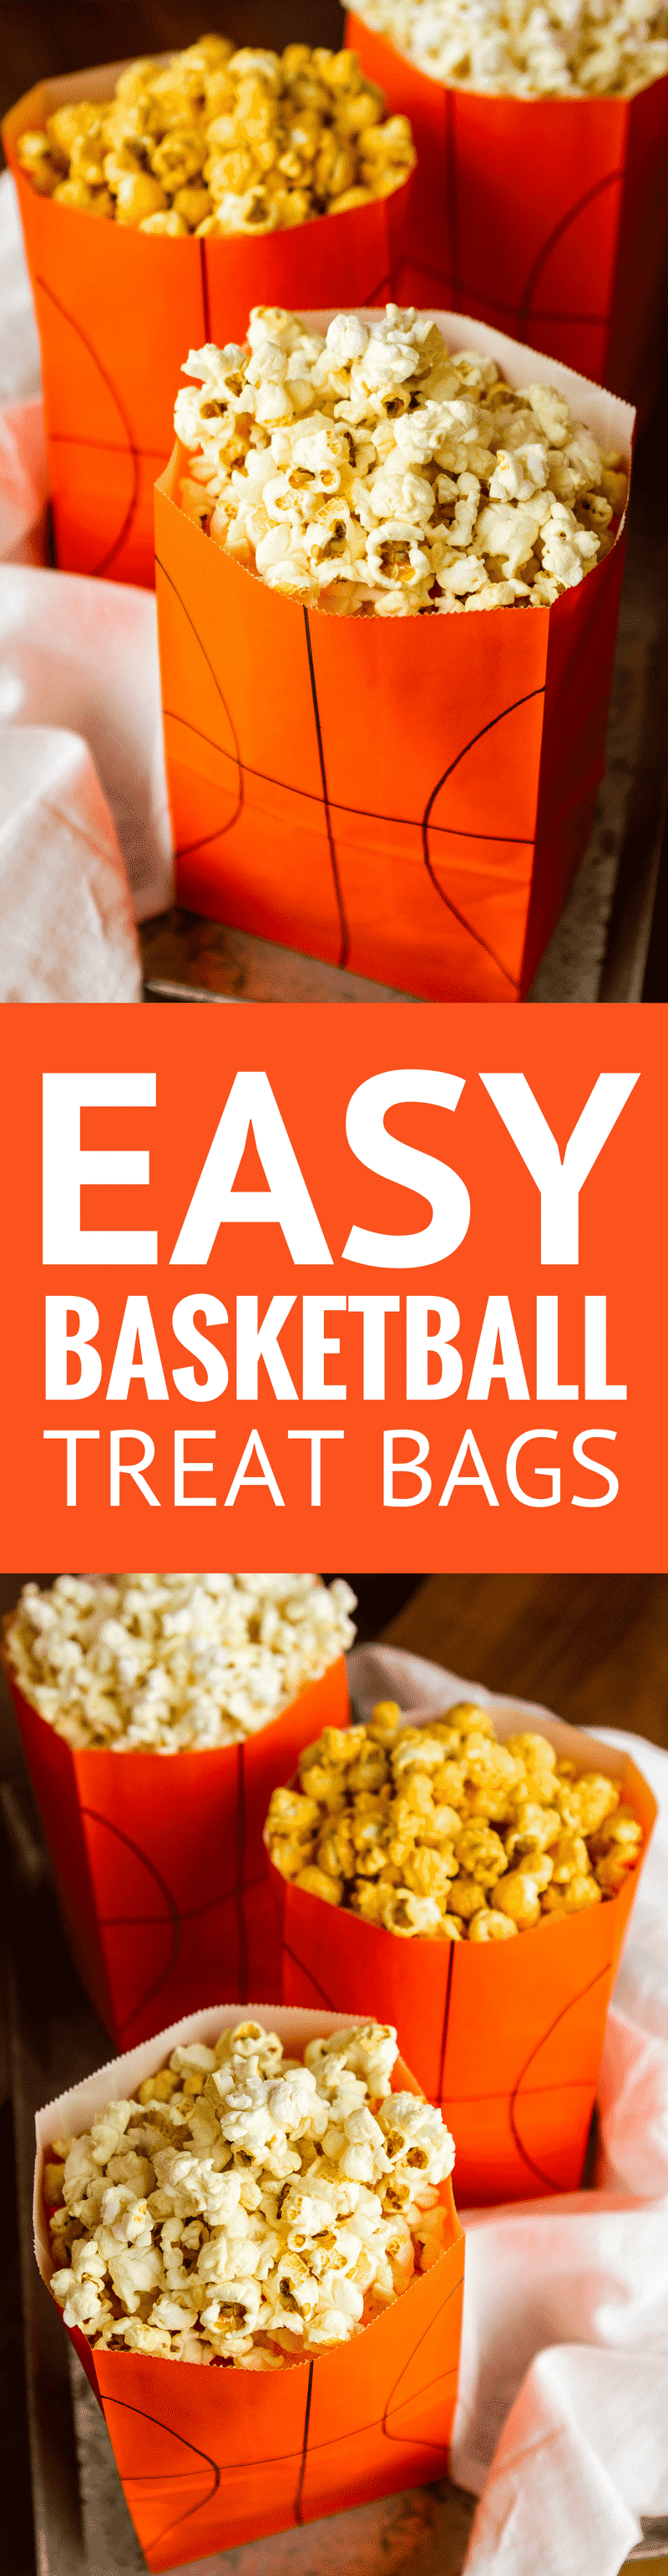 Easy Diy Basketball Treat Bags This Fun Craft Is So Quick And To Complete Goo Party